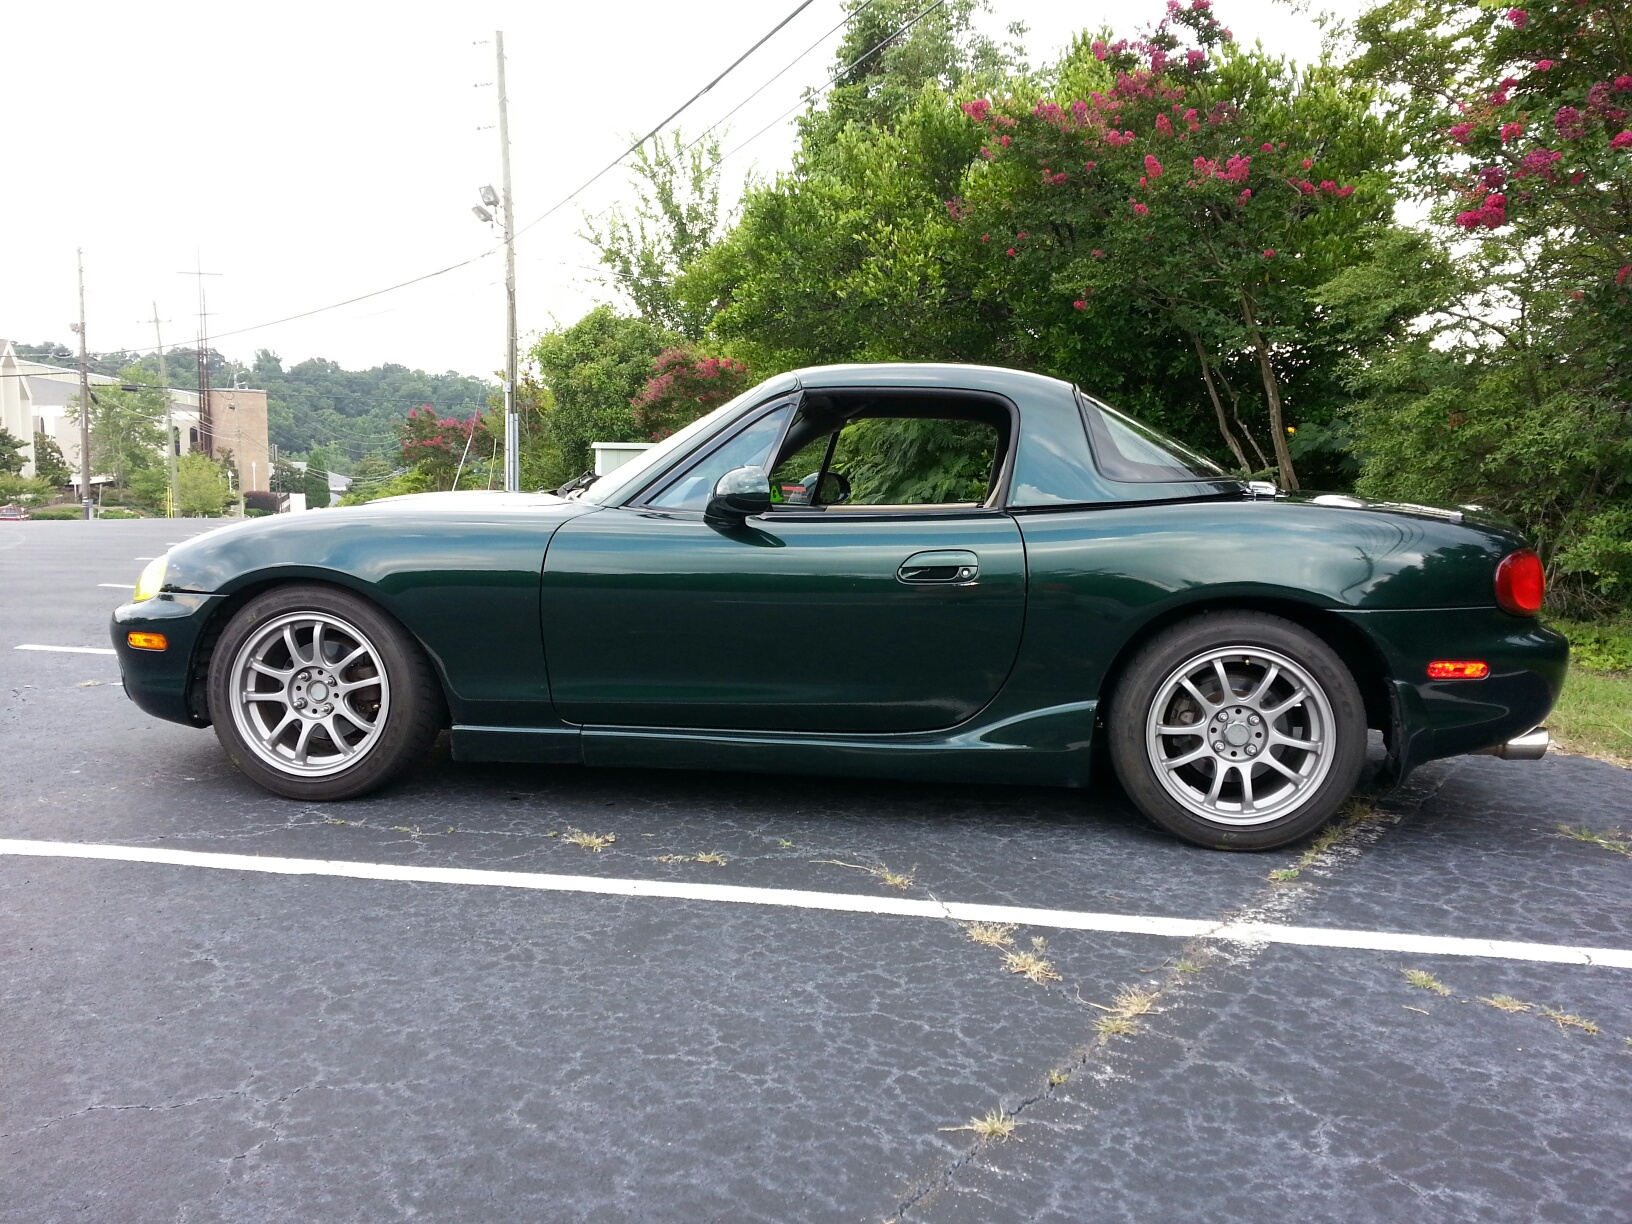 Forums  Classifieds  1999 Miata with hardtopSOLD  TAC and TVR